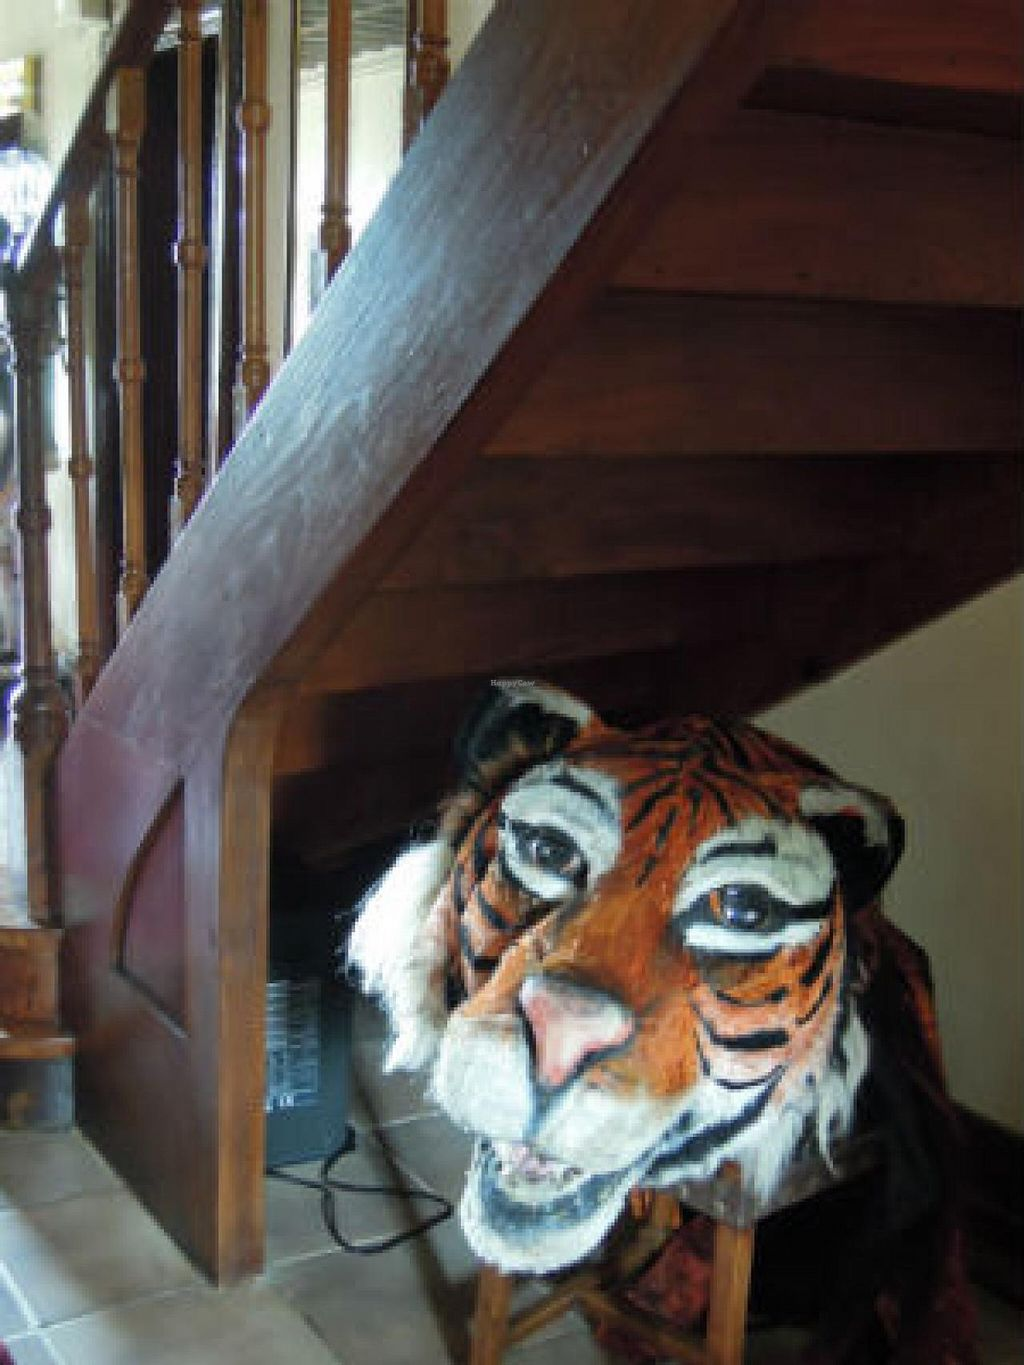 Photo of Le Logis des Quatre Puits  by PlantEaters <br/>Les Quatre Puits charming hosts, John and Keith, have a background in theatre - who knew?! Lots of families stay here too and kids are not scared off <br/> July 13, 2014  - <a href='/contact/abuse/image/34122/73940'>Report</a>